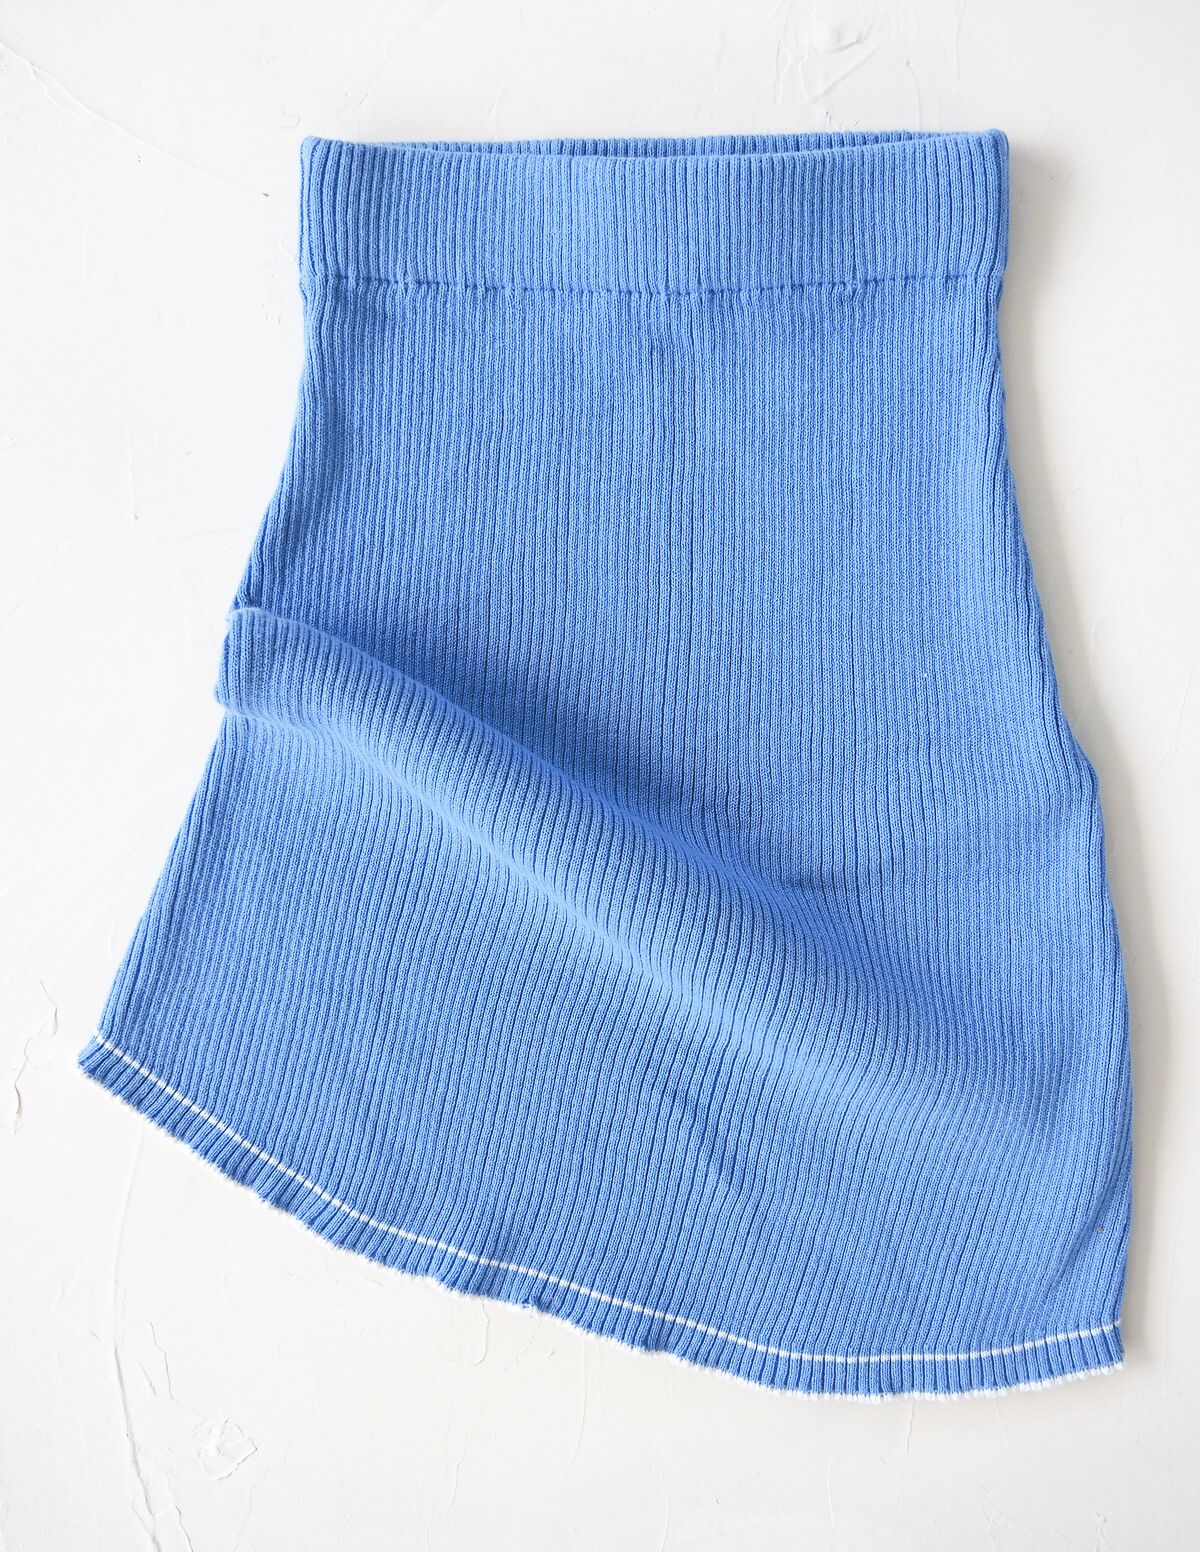 The Anyday Rib Knit Skirt - Sky Blue